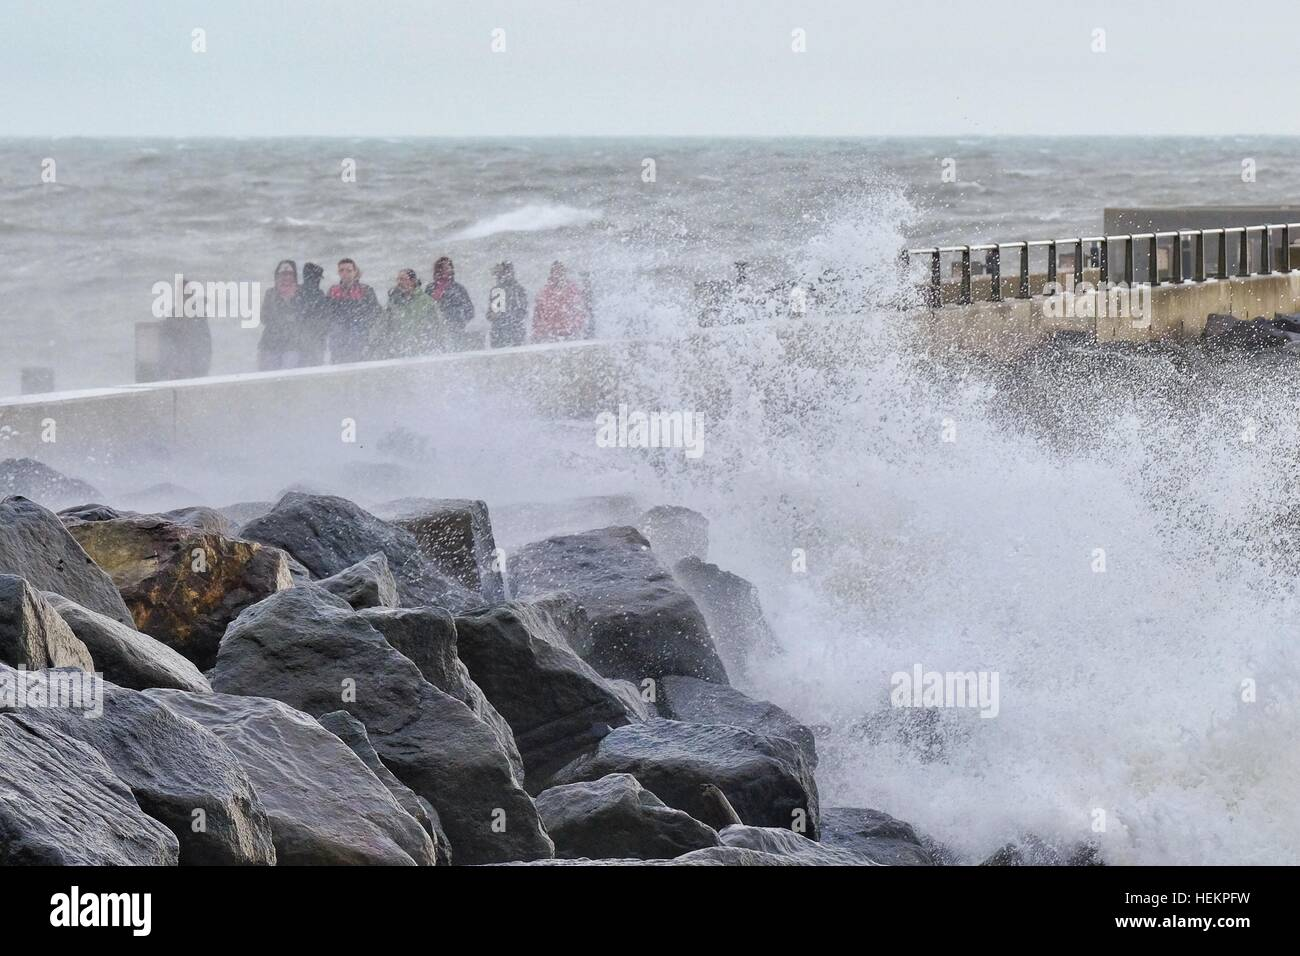 West Bay, Dorset, UK. 23rd Dec, 2016. Weather. Storm watchers get a soaking in West Bay as storm Barbara hits the - Stock Image